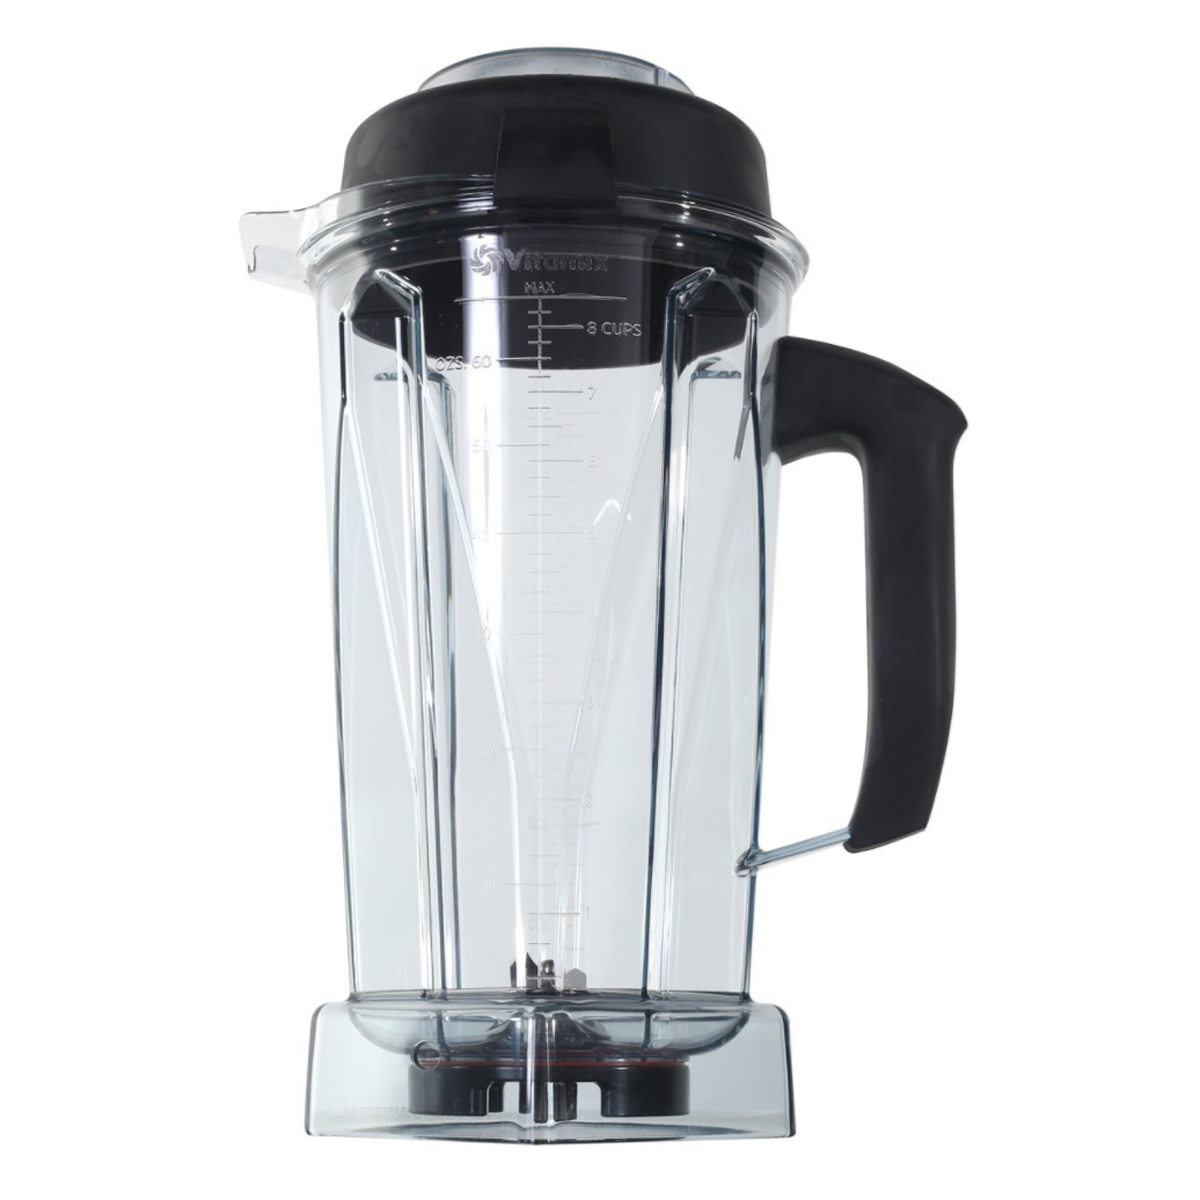 Cooks Power Blender Replacement Parts ~ Vitamix total nutrition centre blender home clearance